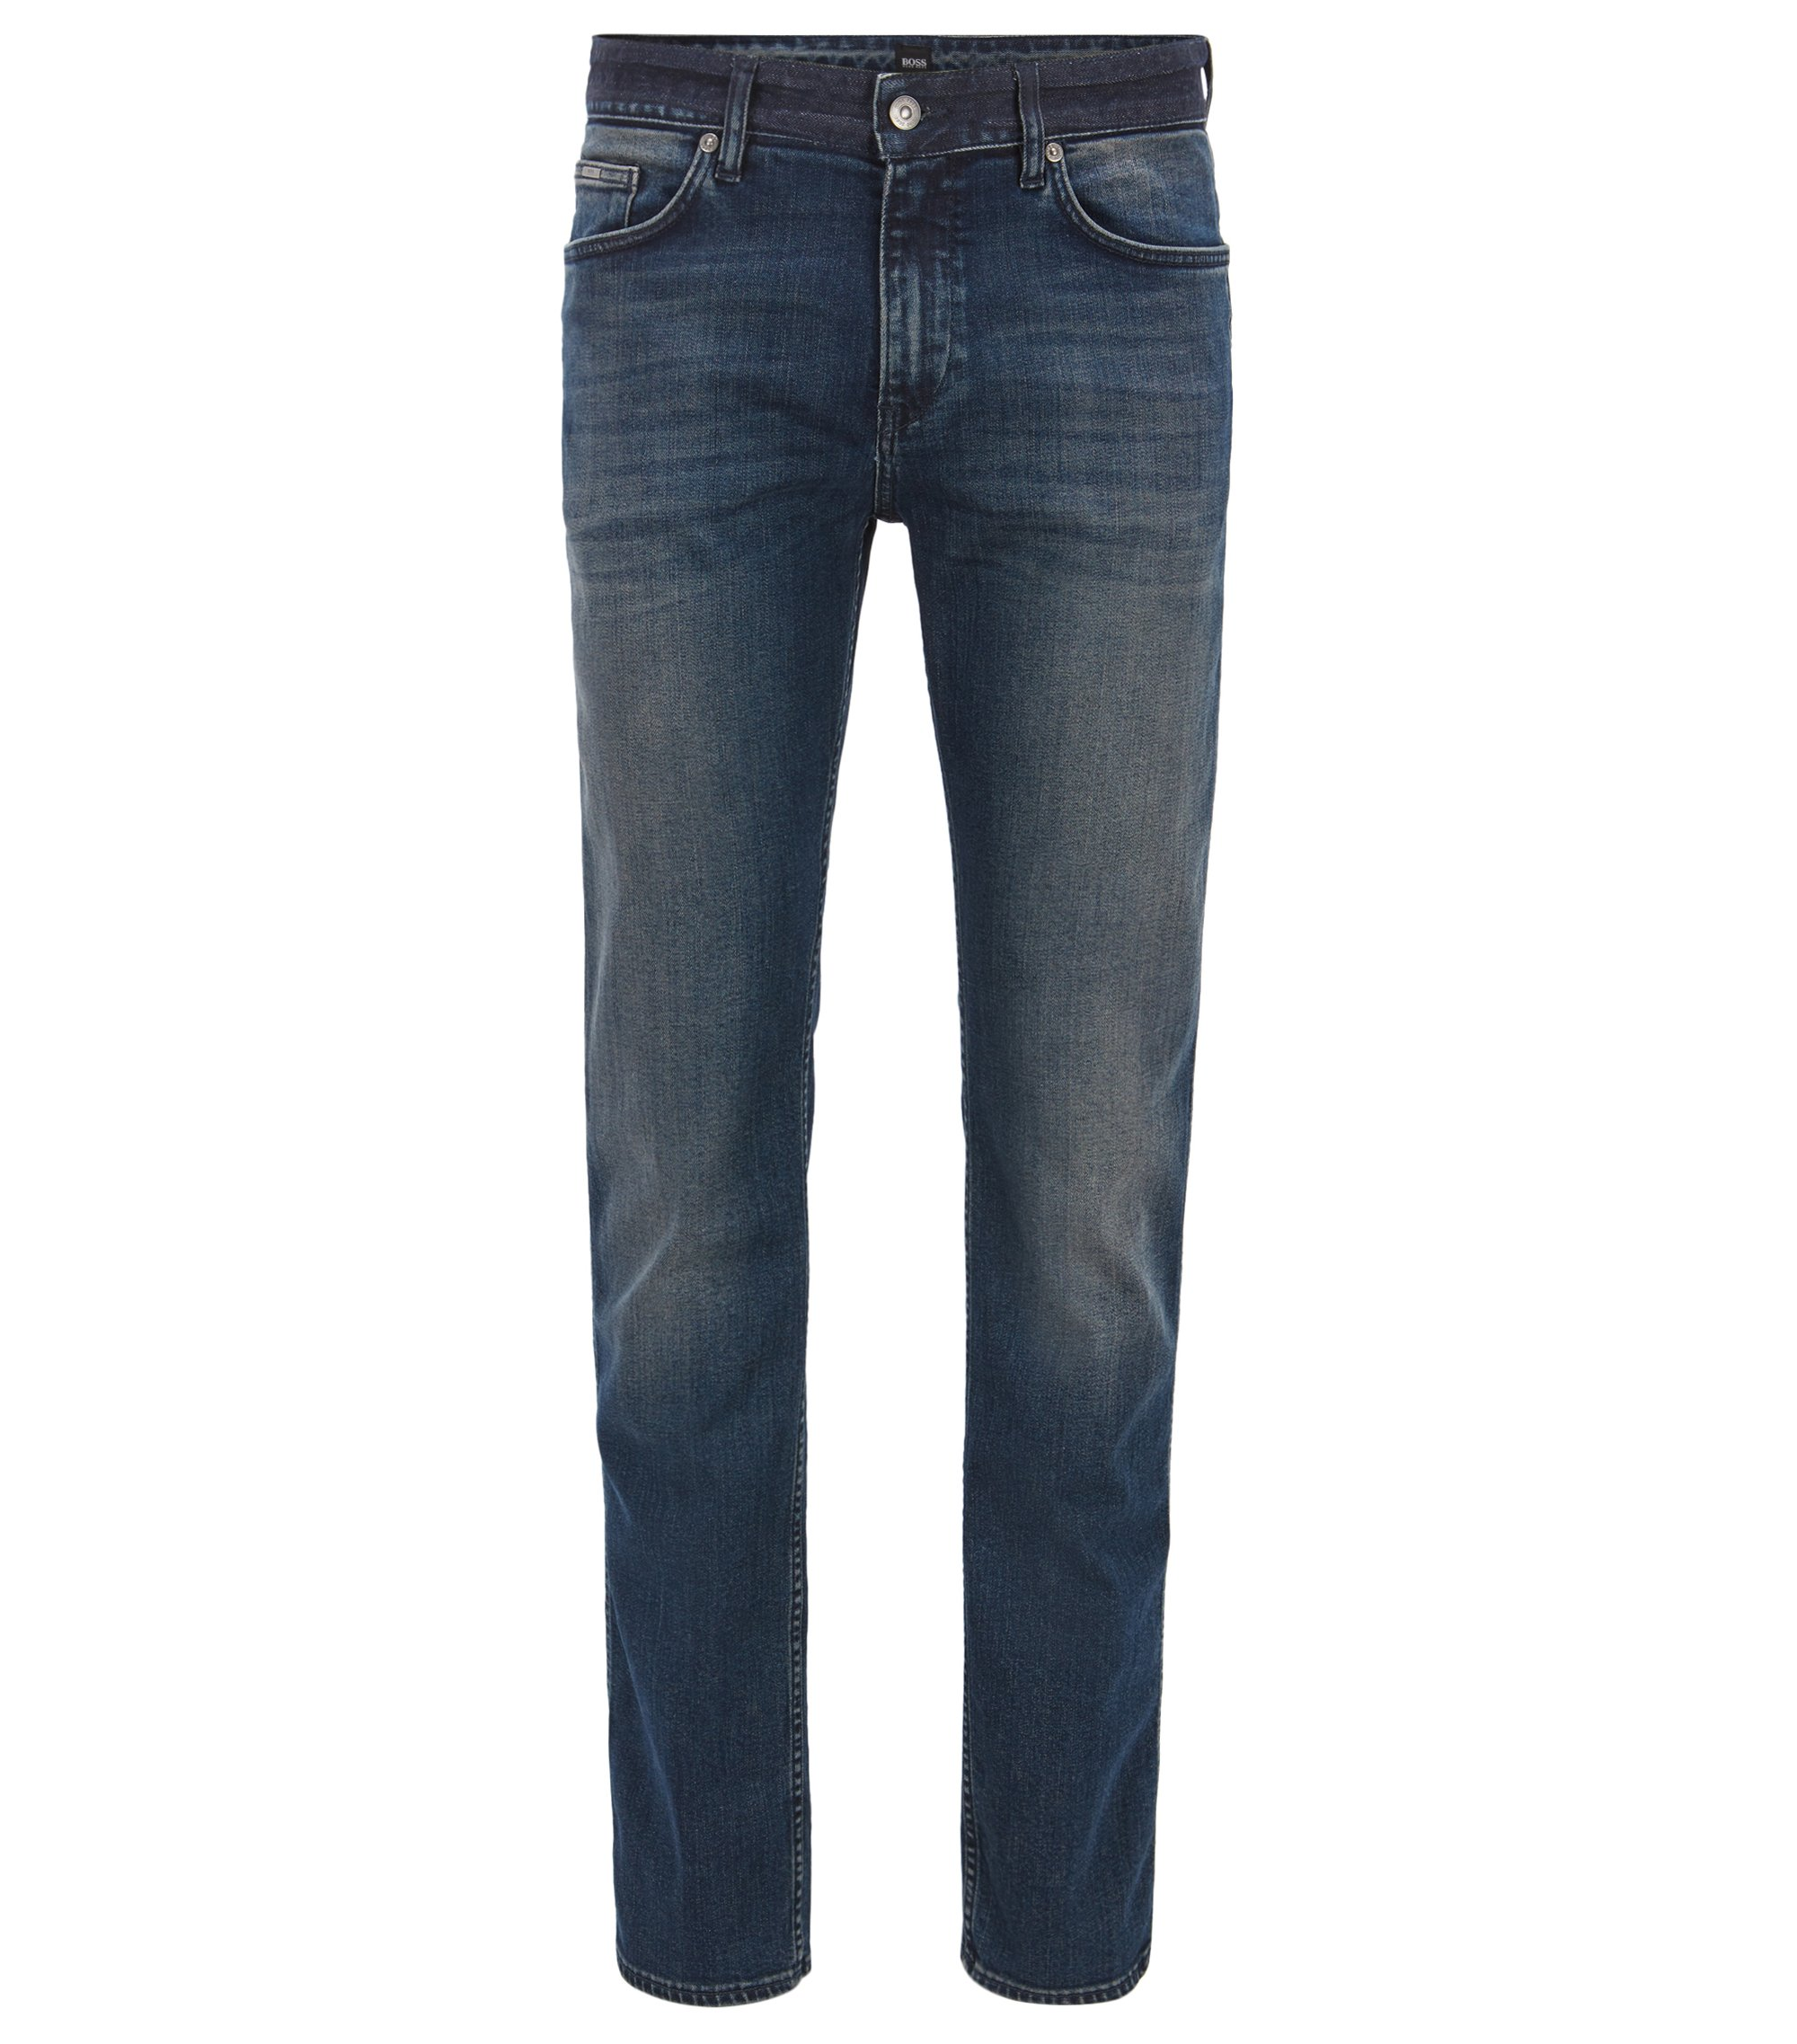 Jean Slim Fit en denim stretch authentique, Bleu foncé